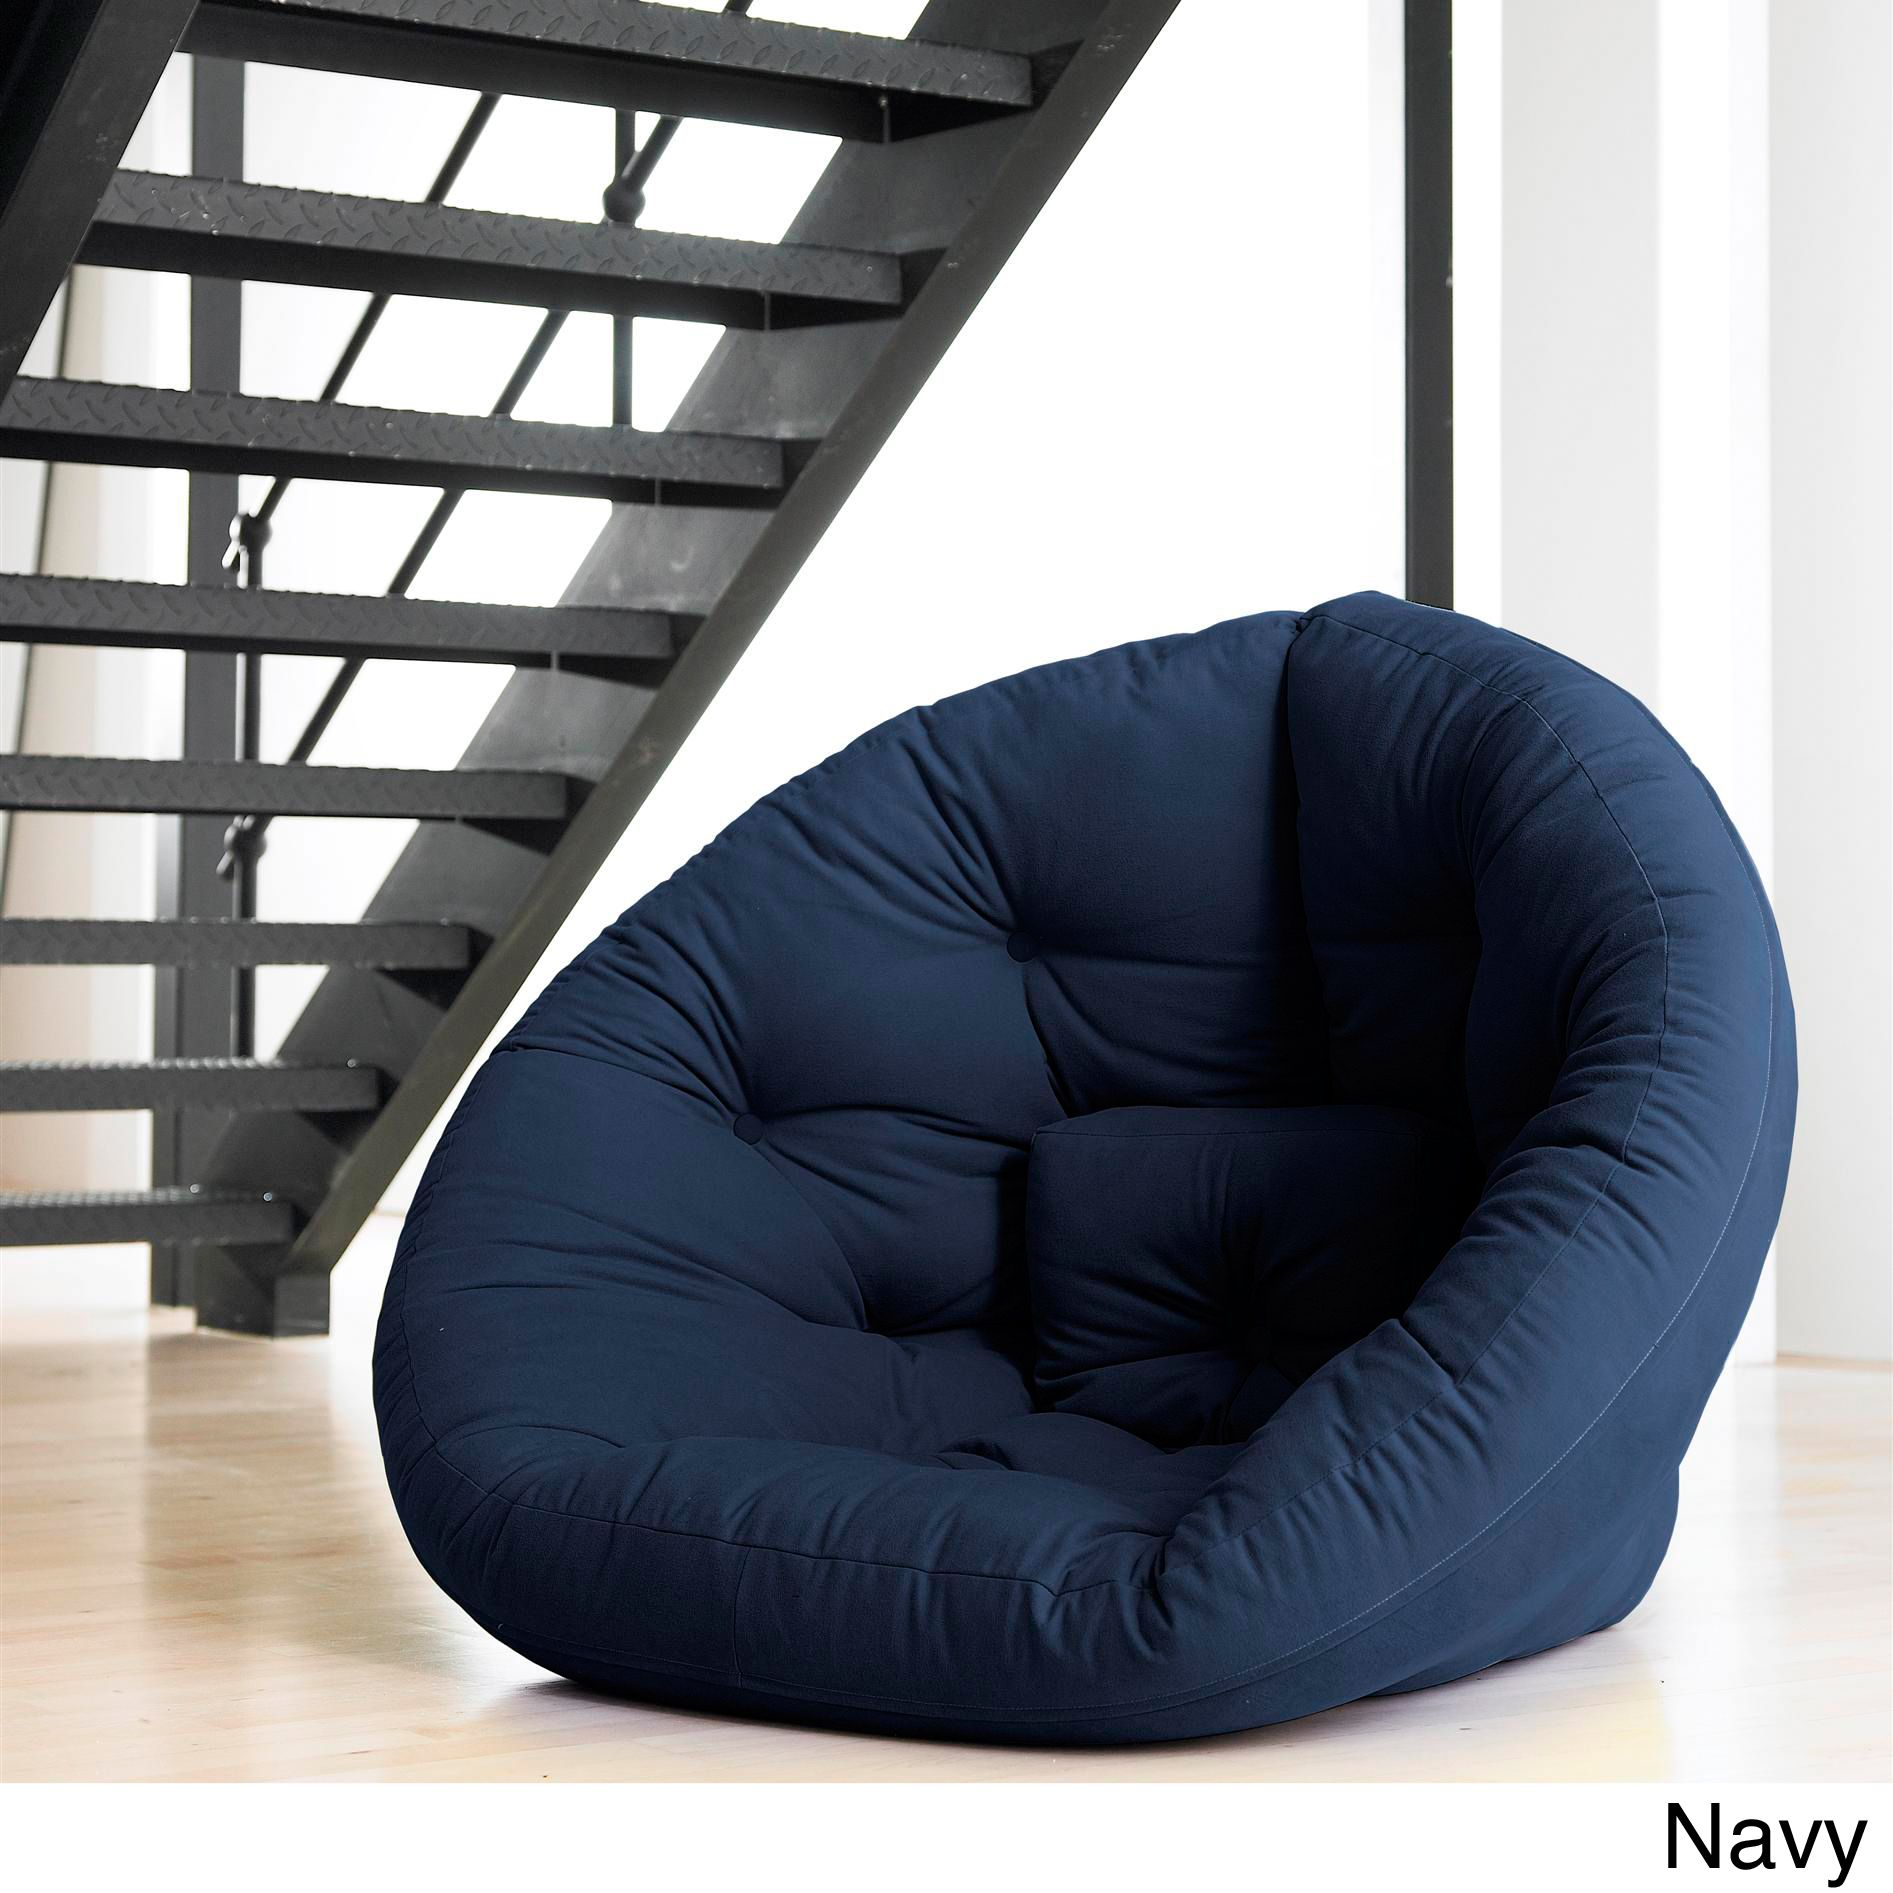 Groovy Fresh Futon Nest Convertible Futon Chair Bed Overstock Caraccident5 Cool Chair Designs And Ideas Caraccident5Info